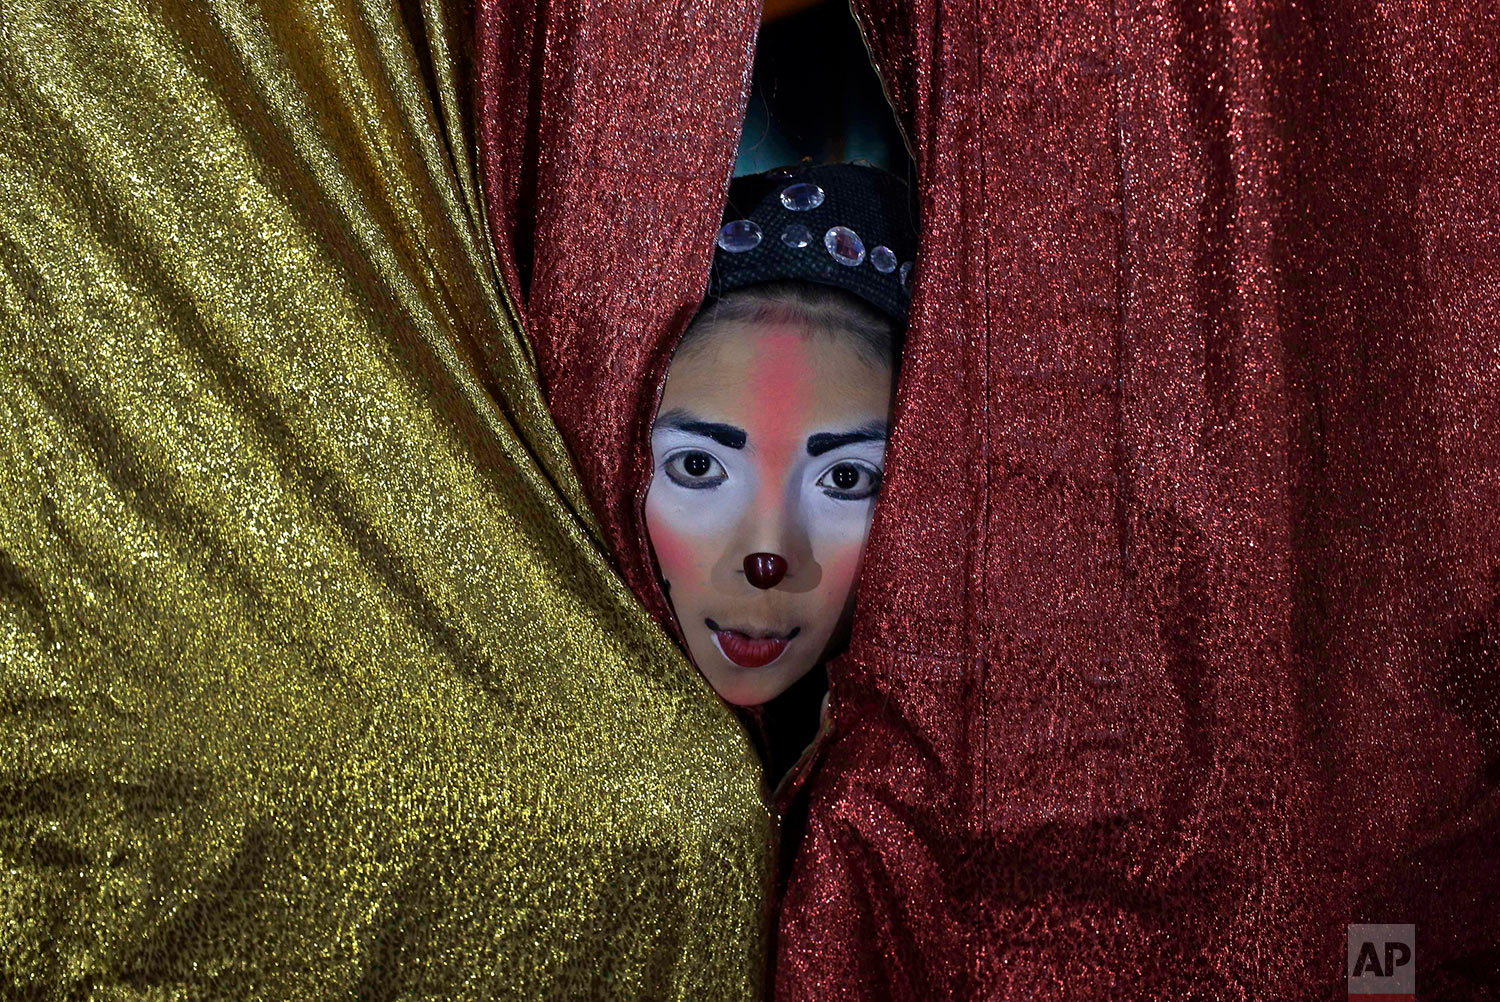 """Joshep Balta, who plays the part of a clown named """"Cachupito,"""" peers through the tent curtain to see how many people are waiting for the show, put on by the International Circus, set up in the shanty town of Puente Piedra on the outskirts of Lima, Peru, July 20, 2018. Balta, a 12-year old clown whose parents work at the circus setting up and breaking down the encampment, was discovered by the circus two years ago when he was performing as a clown at street corners. (AP Photo/Martin Mejia)"""